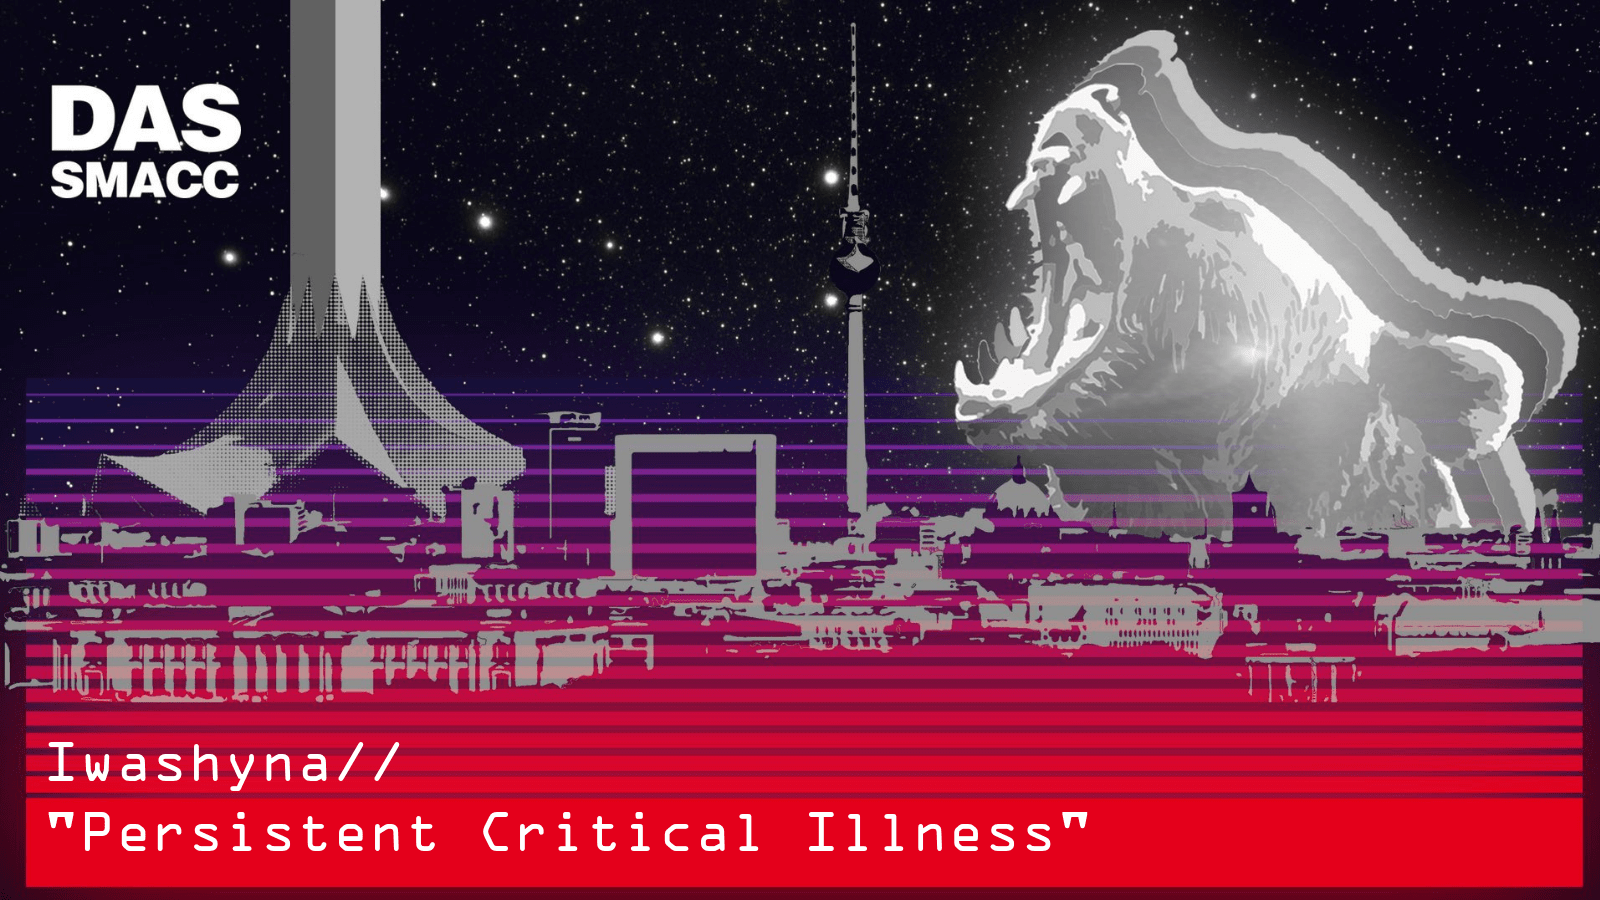 Persistent Critical Illness